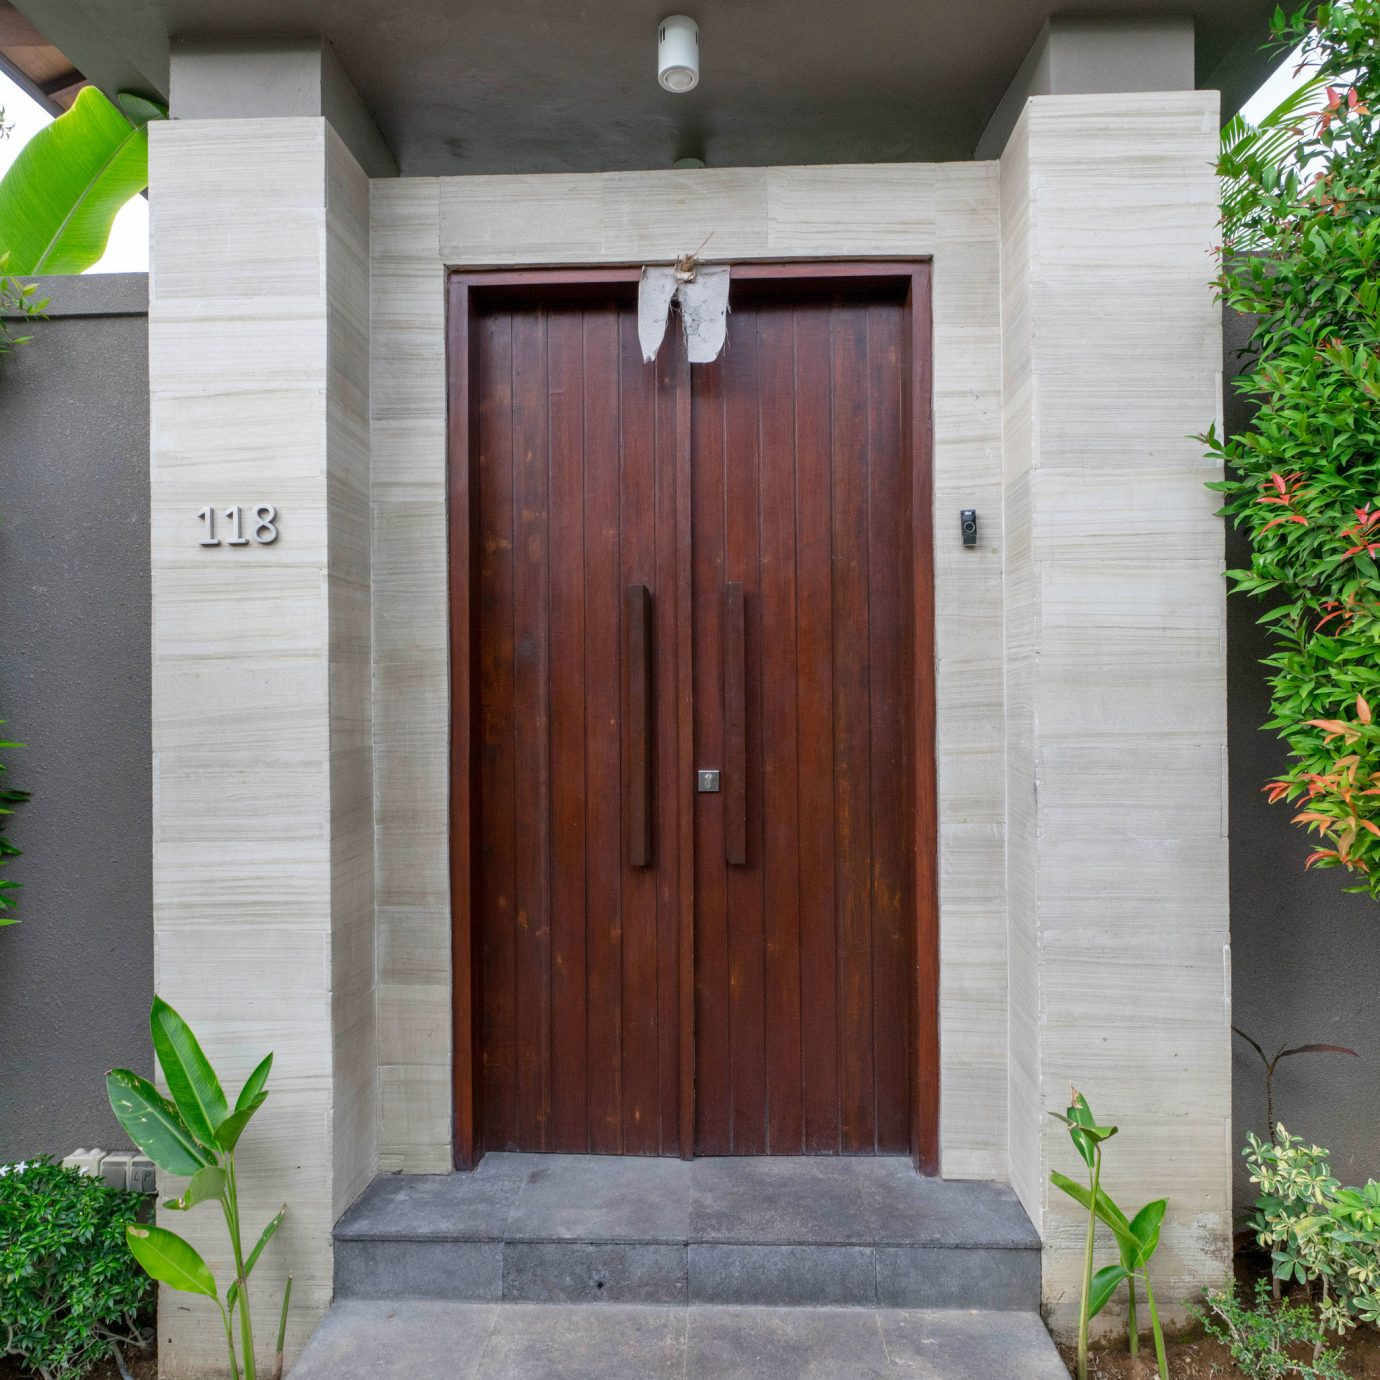 tree plant building property door house shed home green cottage outdoor structure Garden